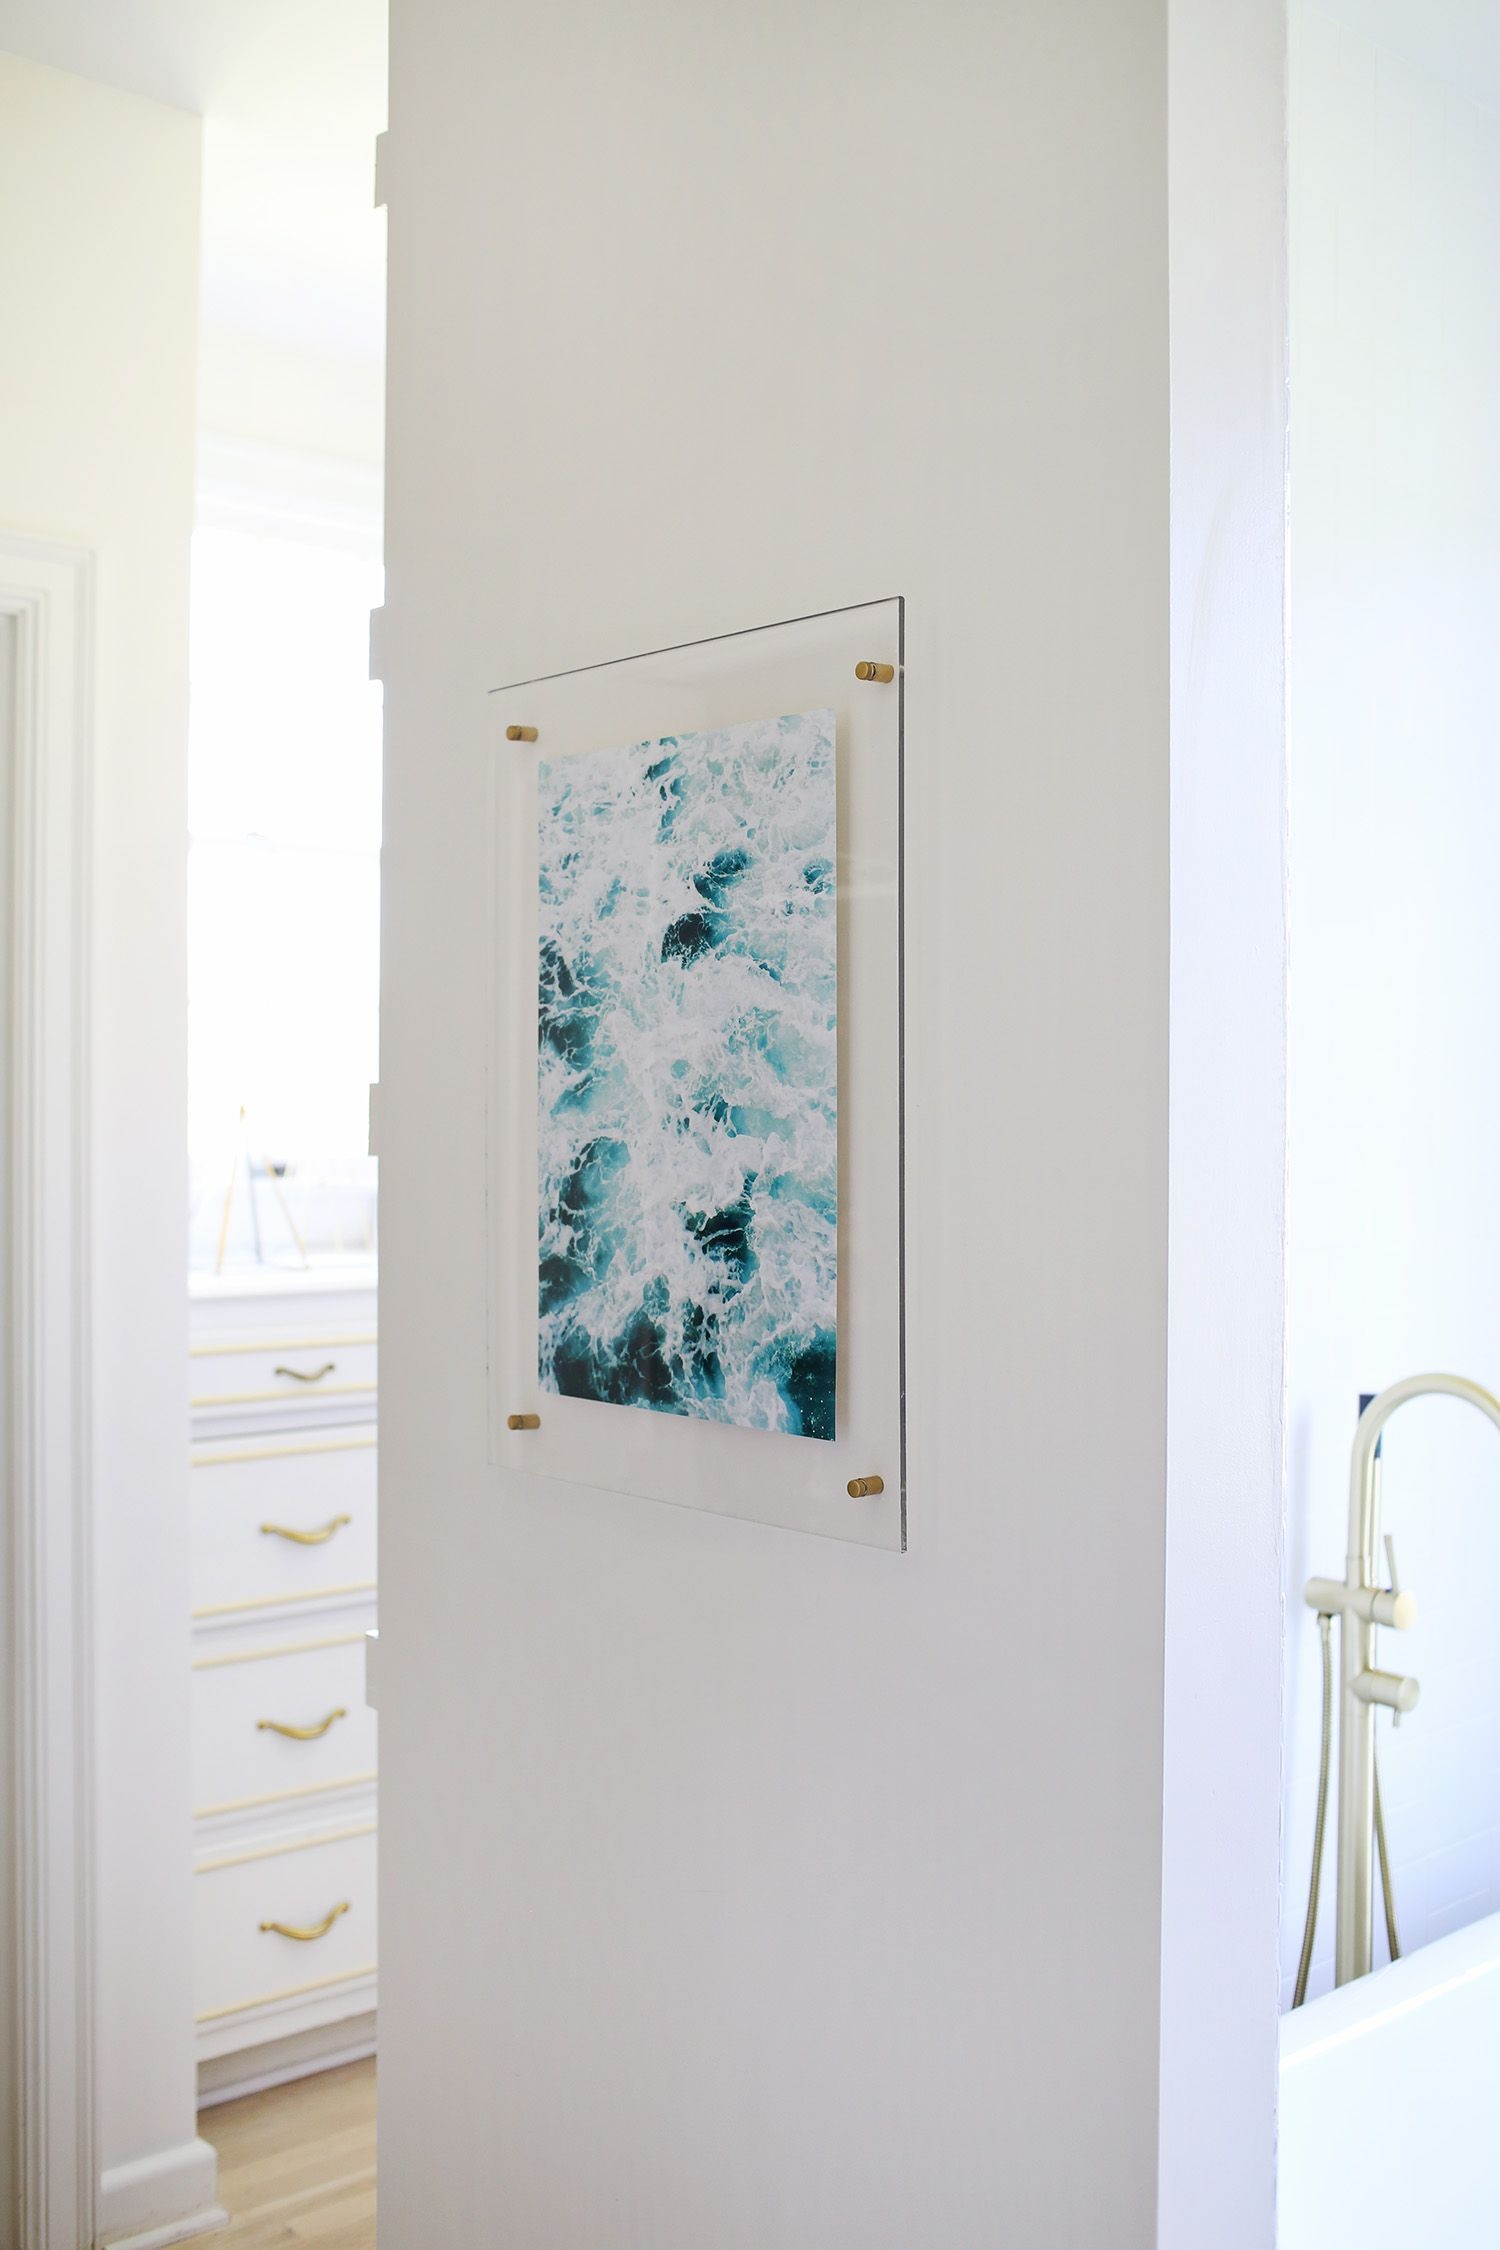 Floating Acrylic Frame DIY | Acrylic frames, Acrylics and Craft